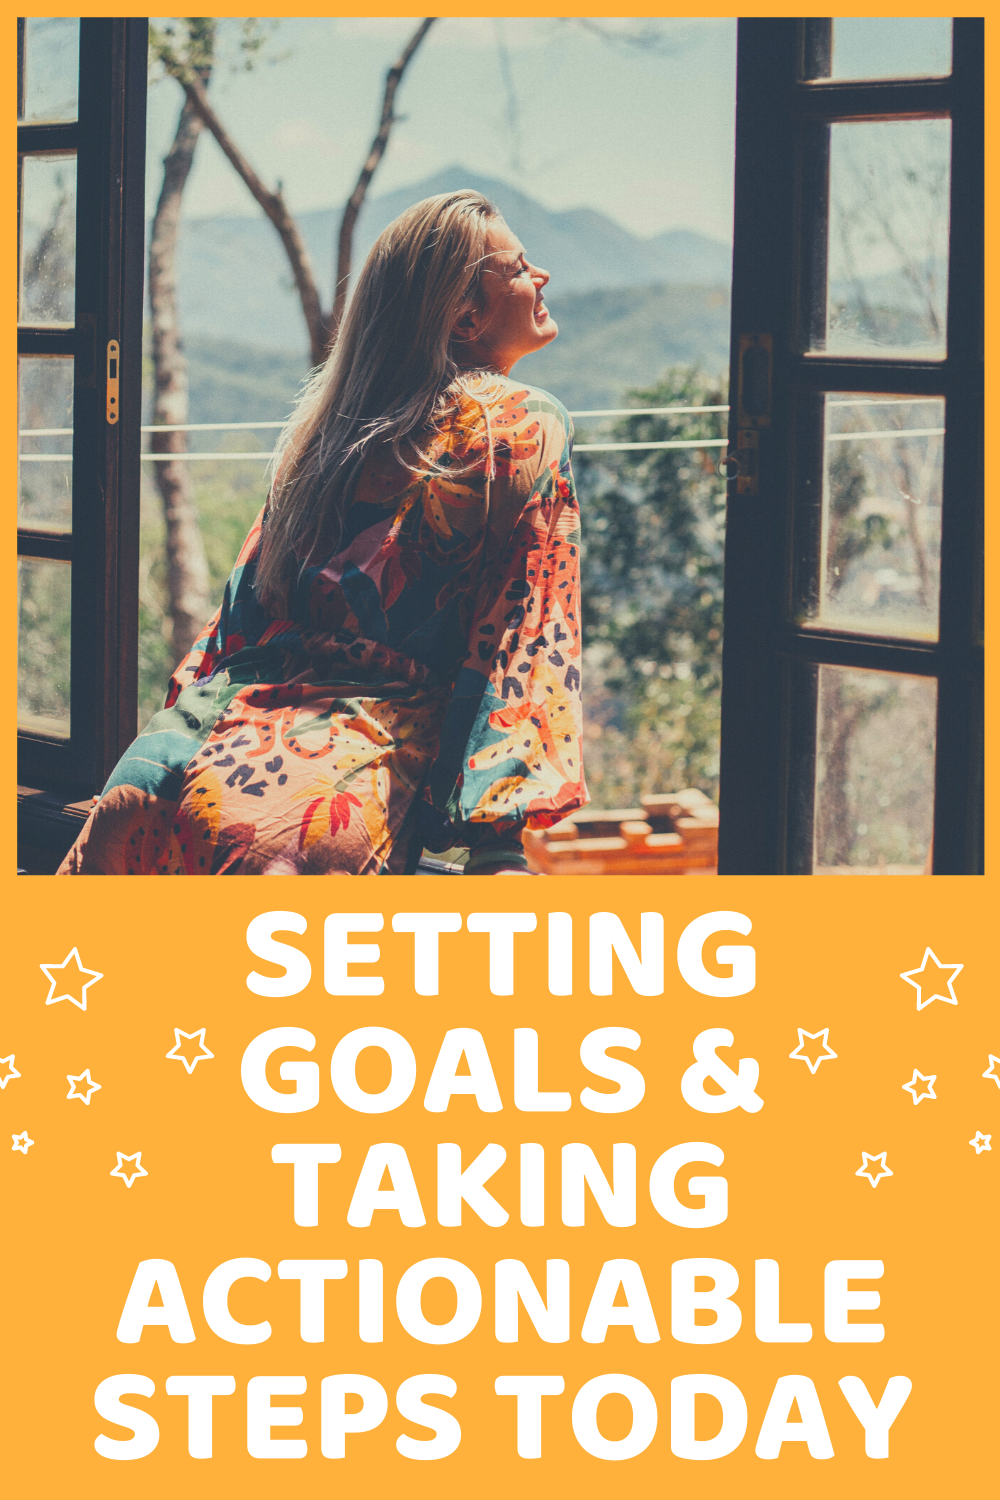 Setting goals and taking actionable steps today!